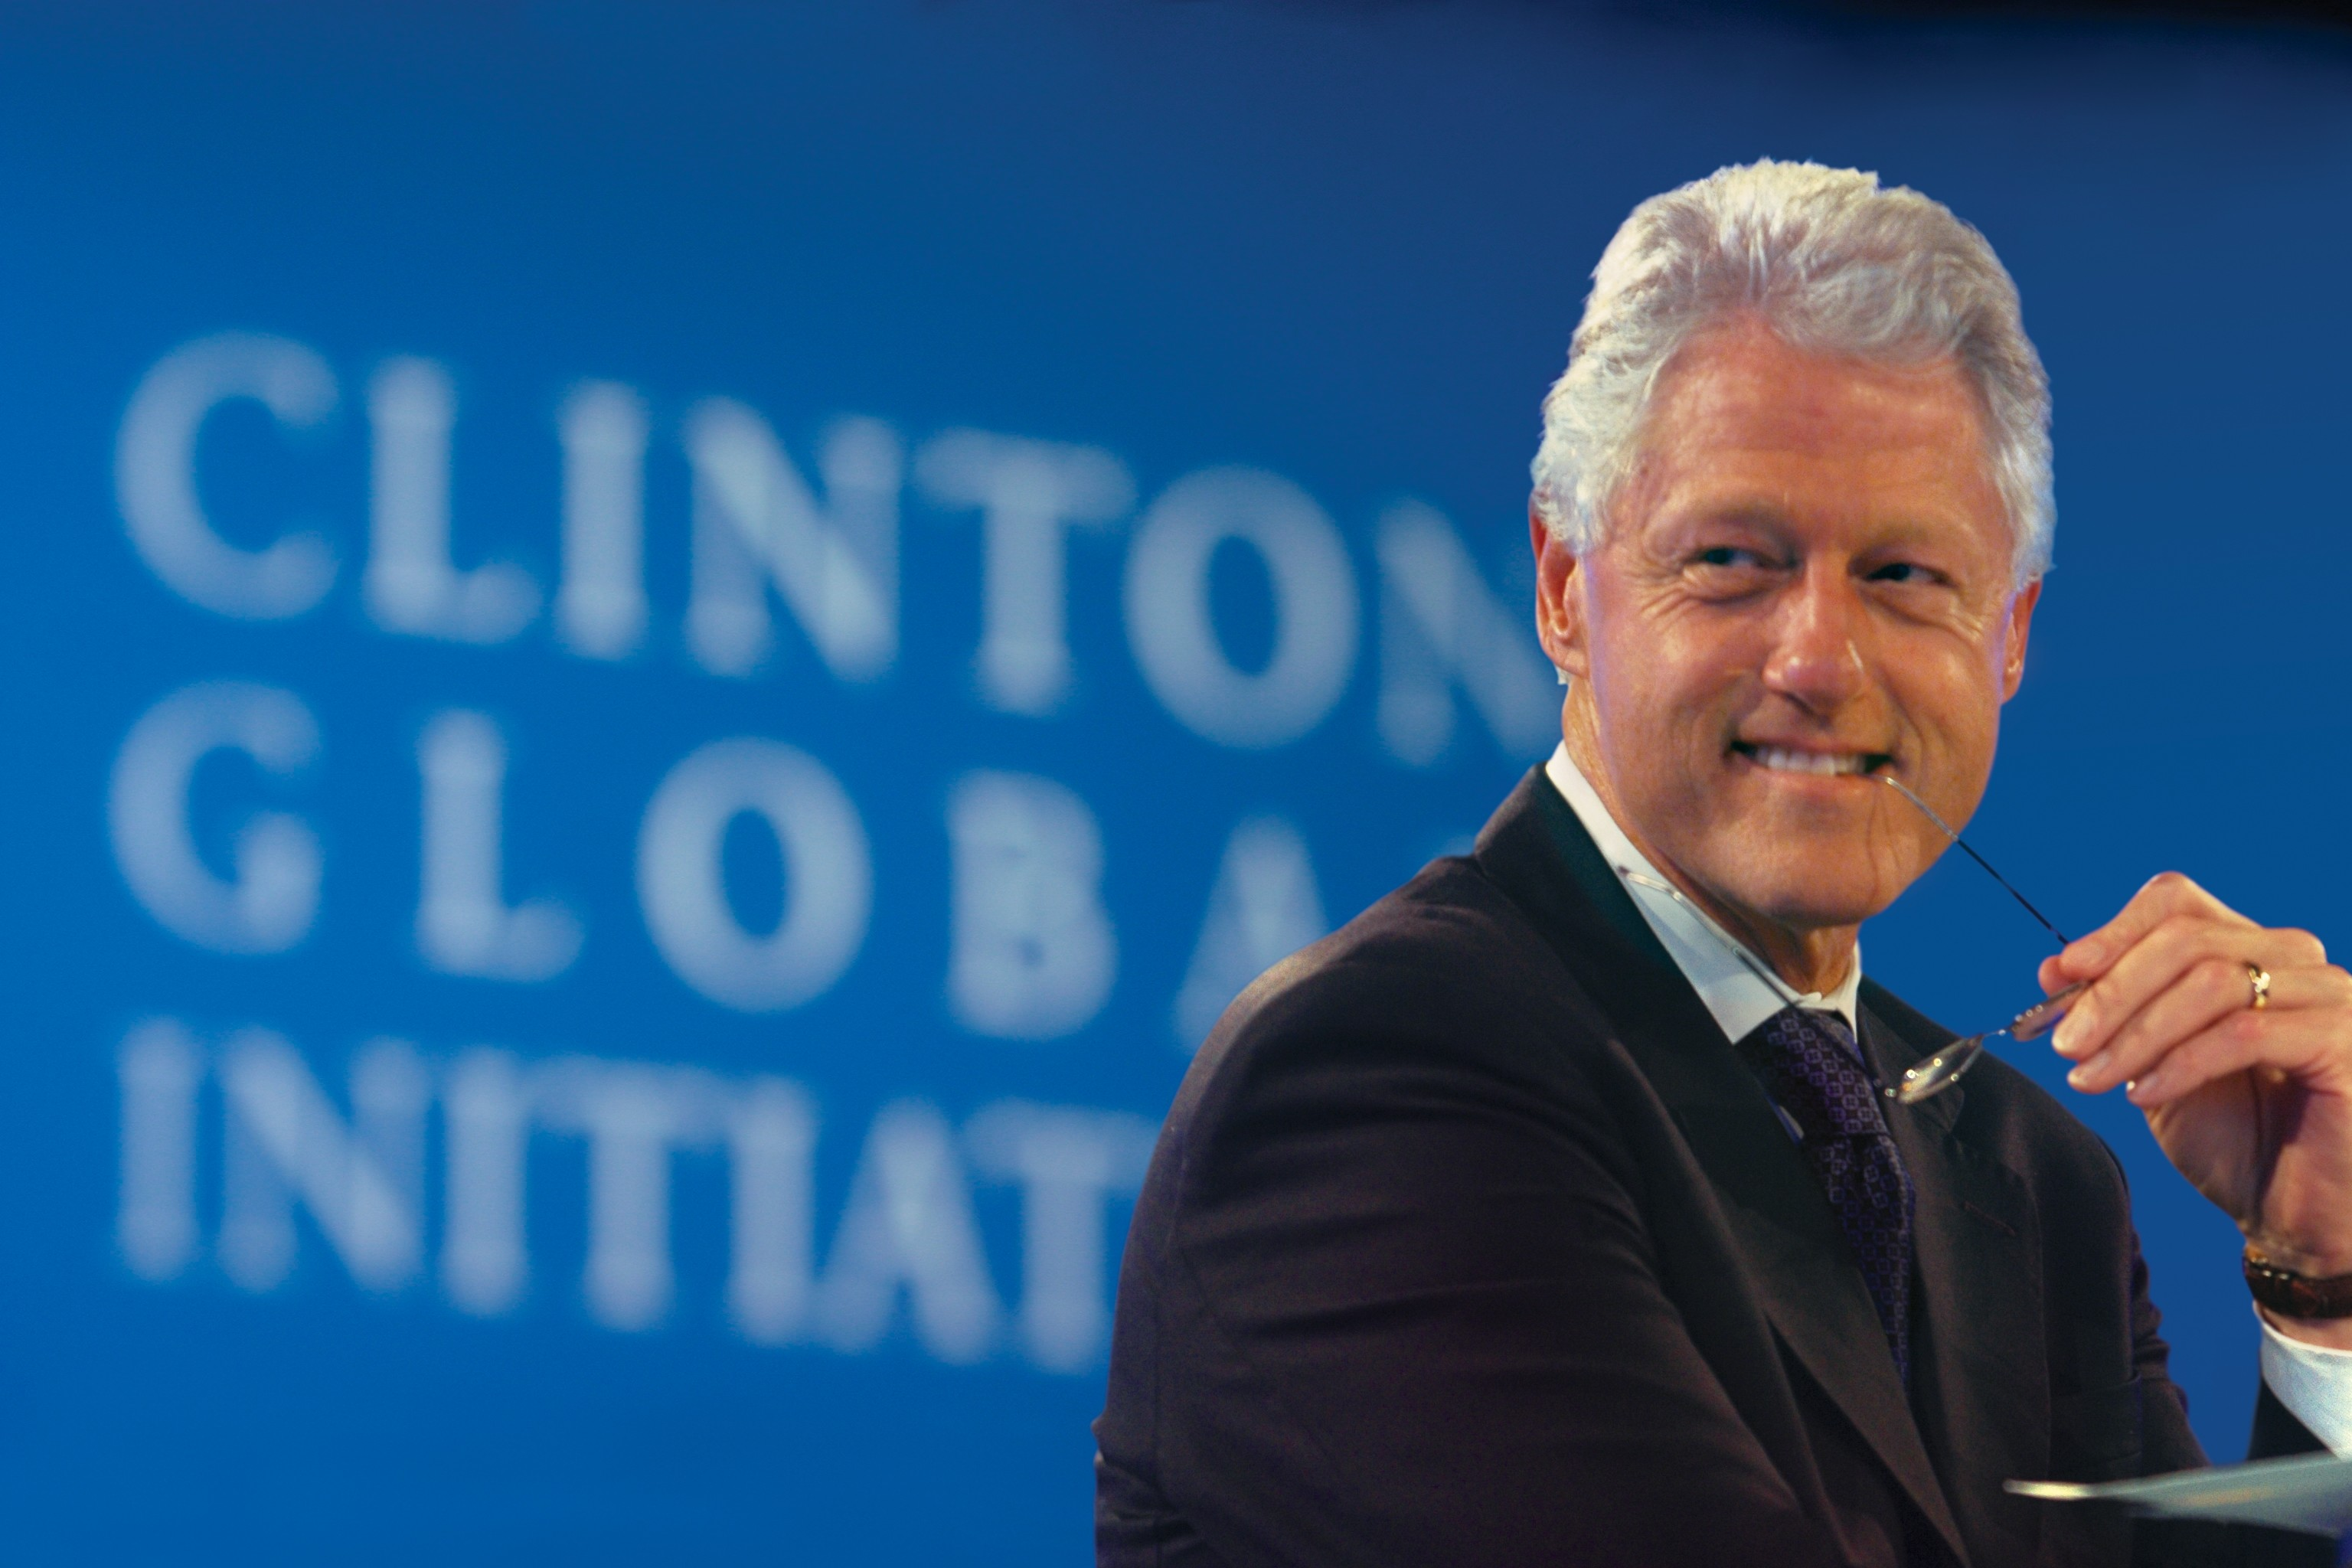 … billclinton